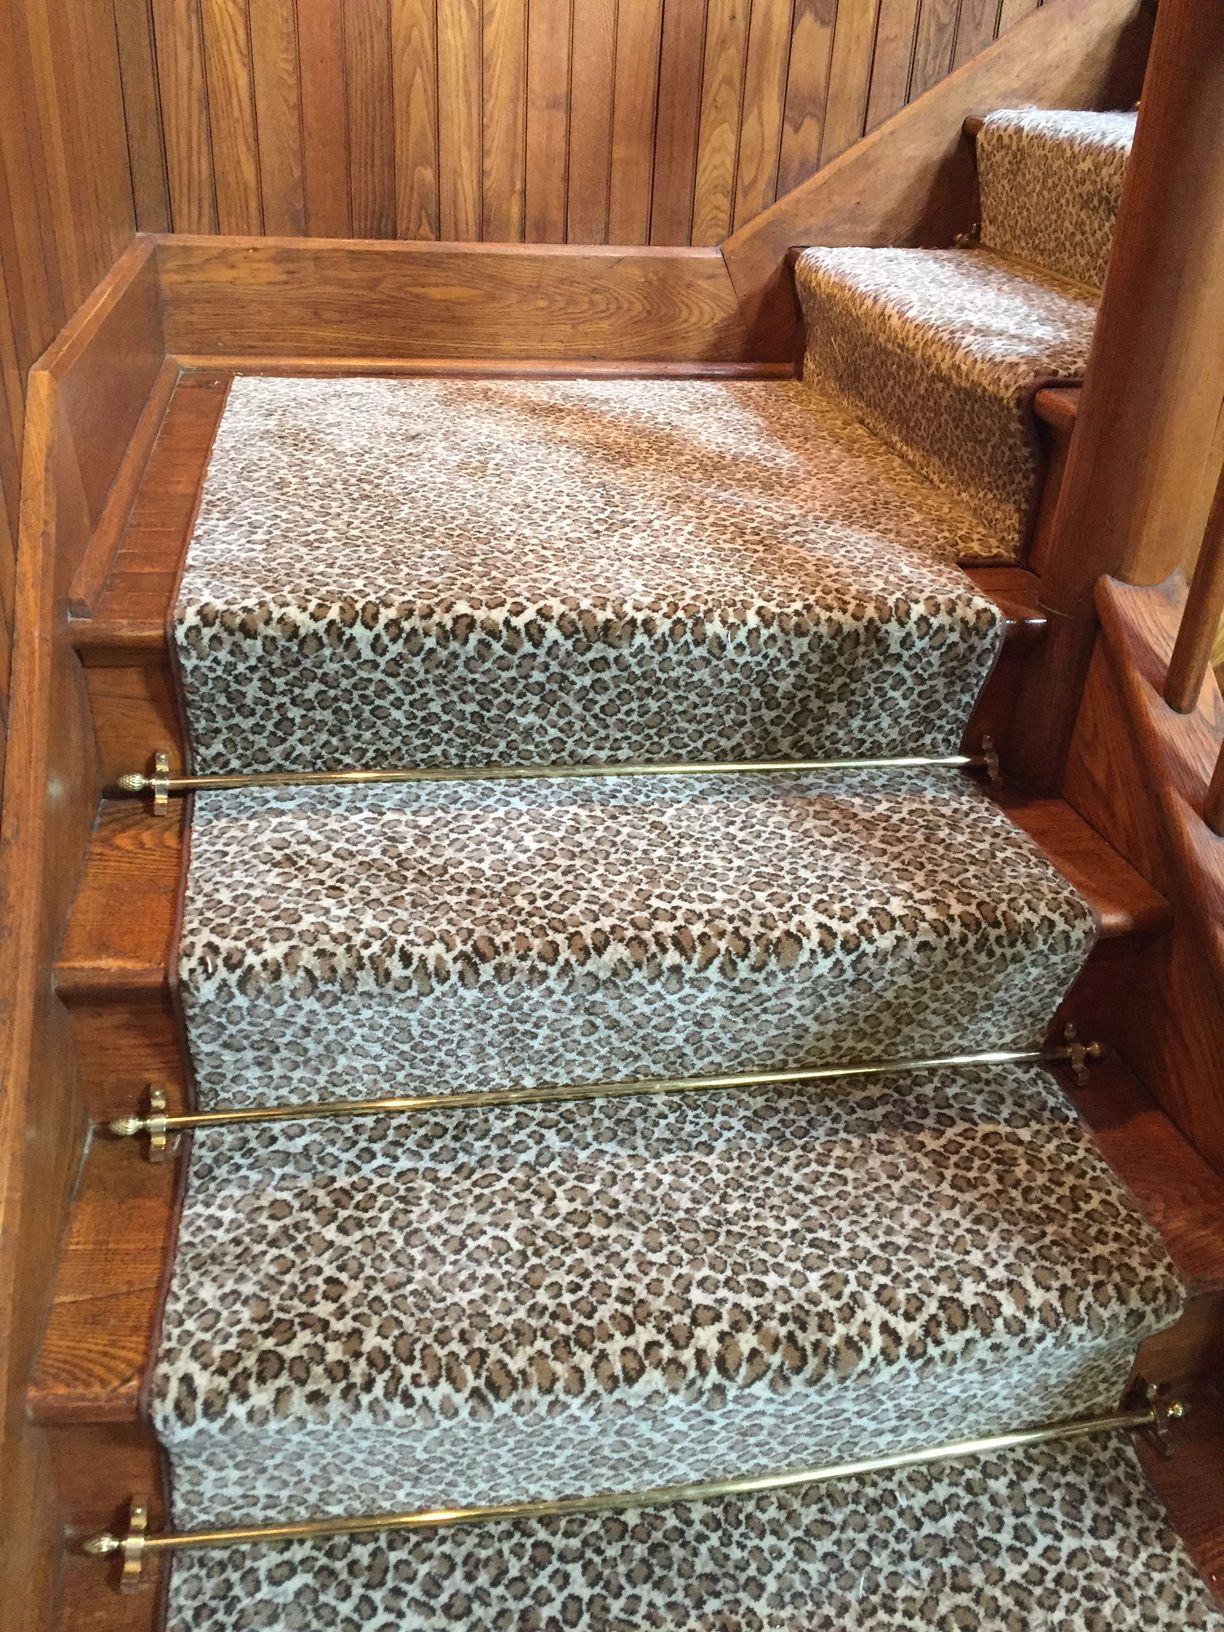 Animal Print Carpet On Steps As Runner With Decorative Stair Rods